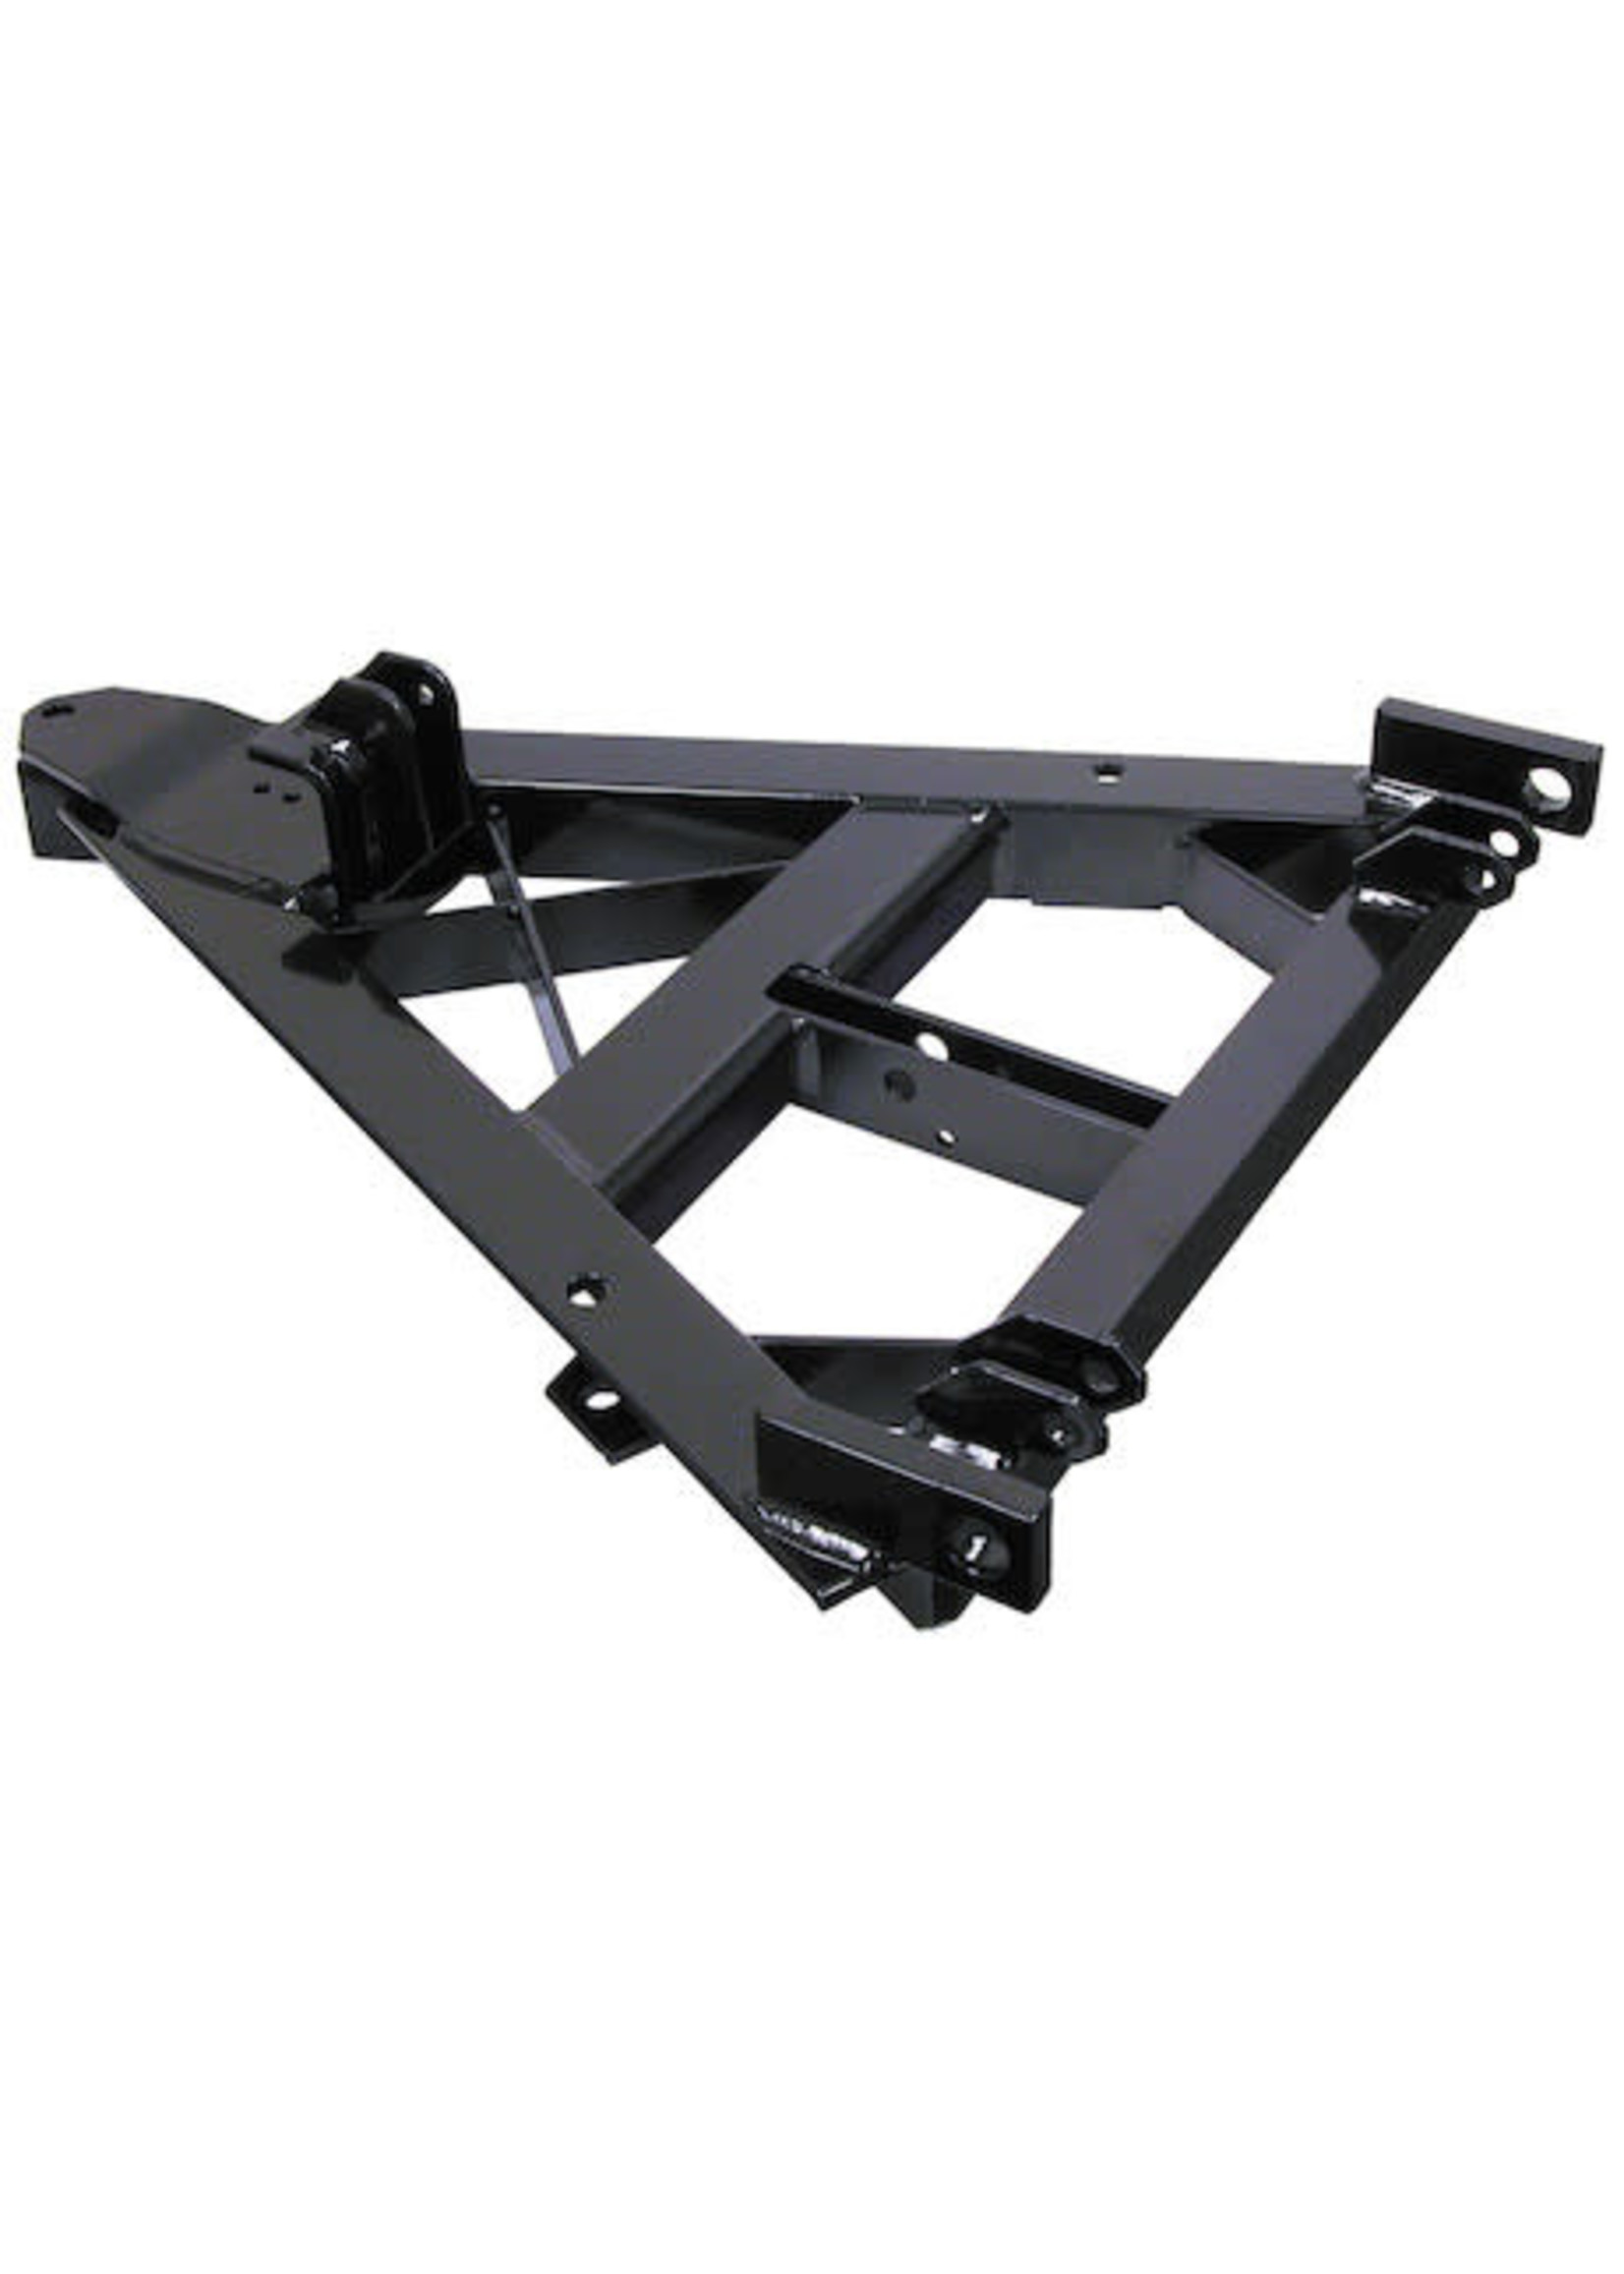 SAM SAM A-Frame For Pro Plow-Replaces Western #61345